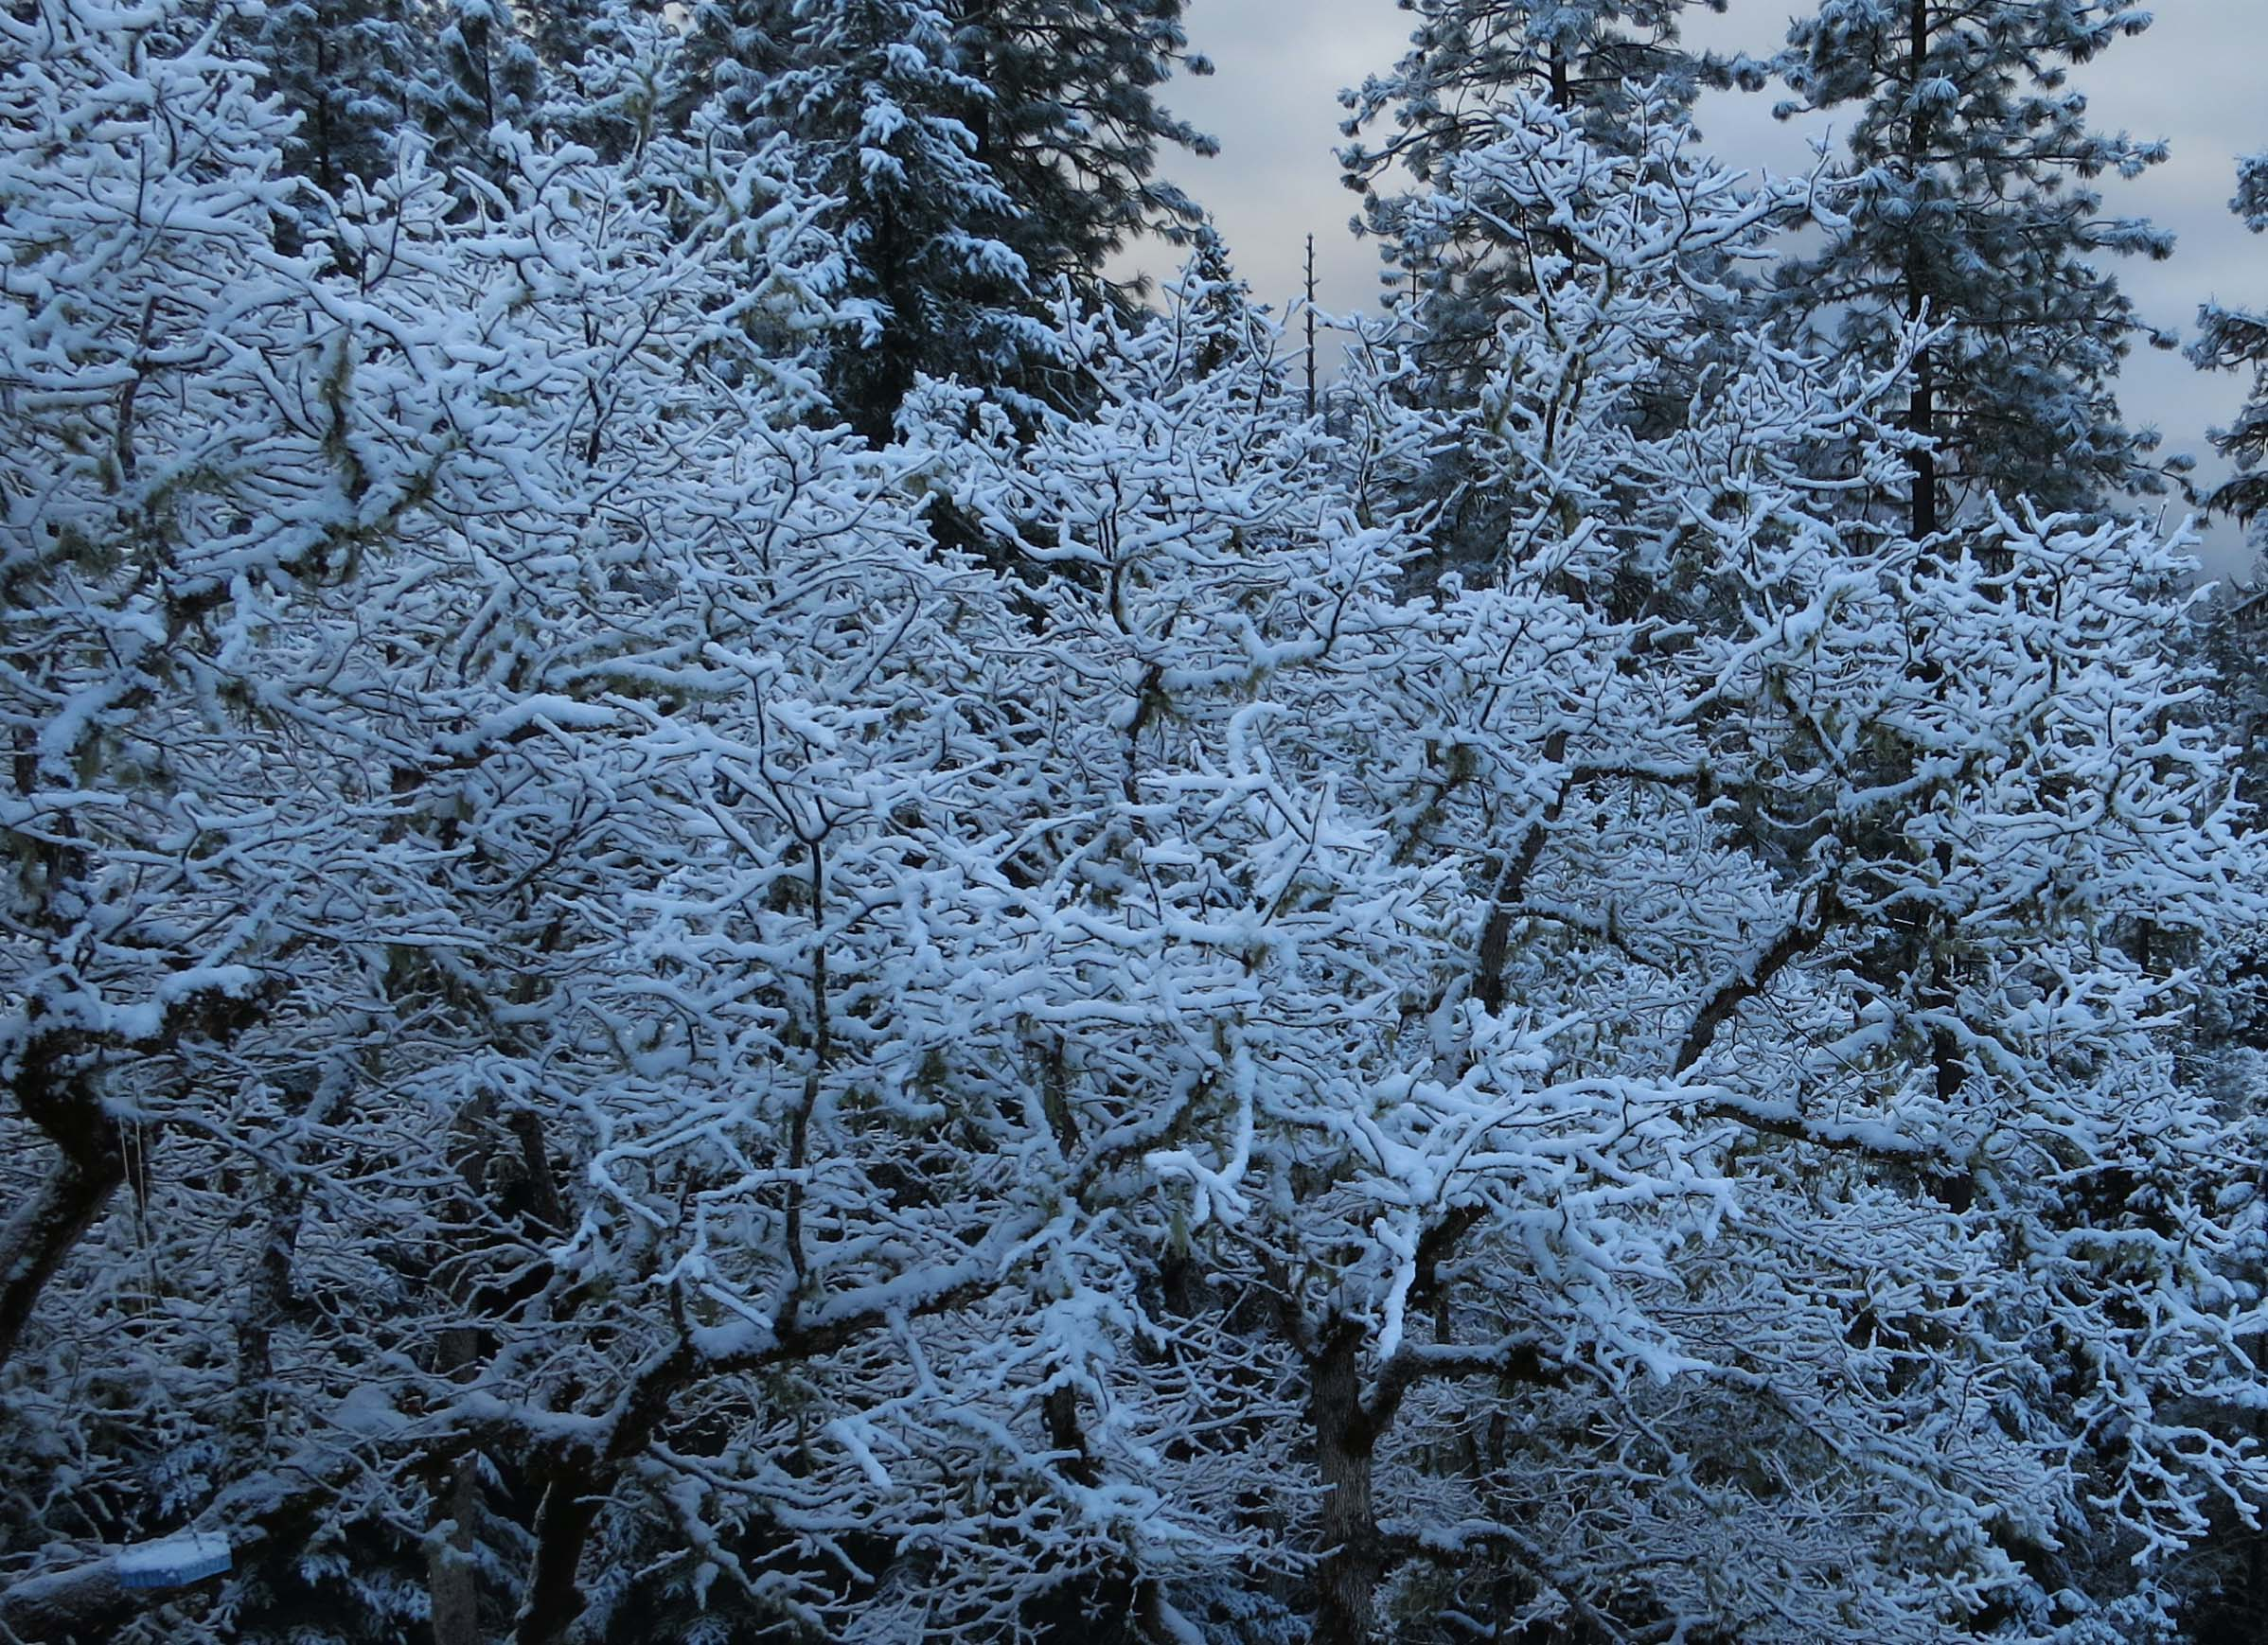 White oaks in the Applegate Valley of southern Oregon covered in snow. Photo by Curtis Mekemson.